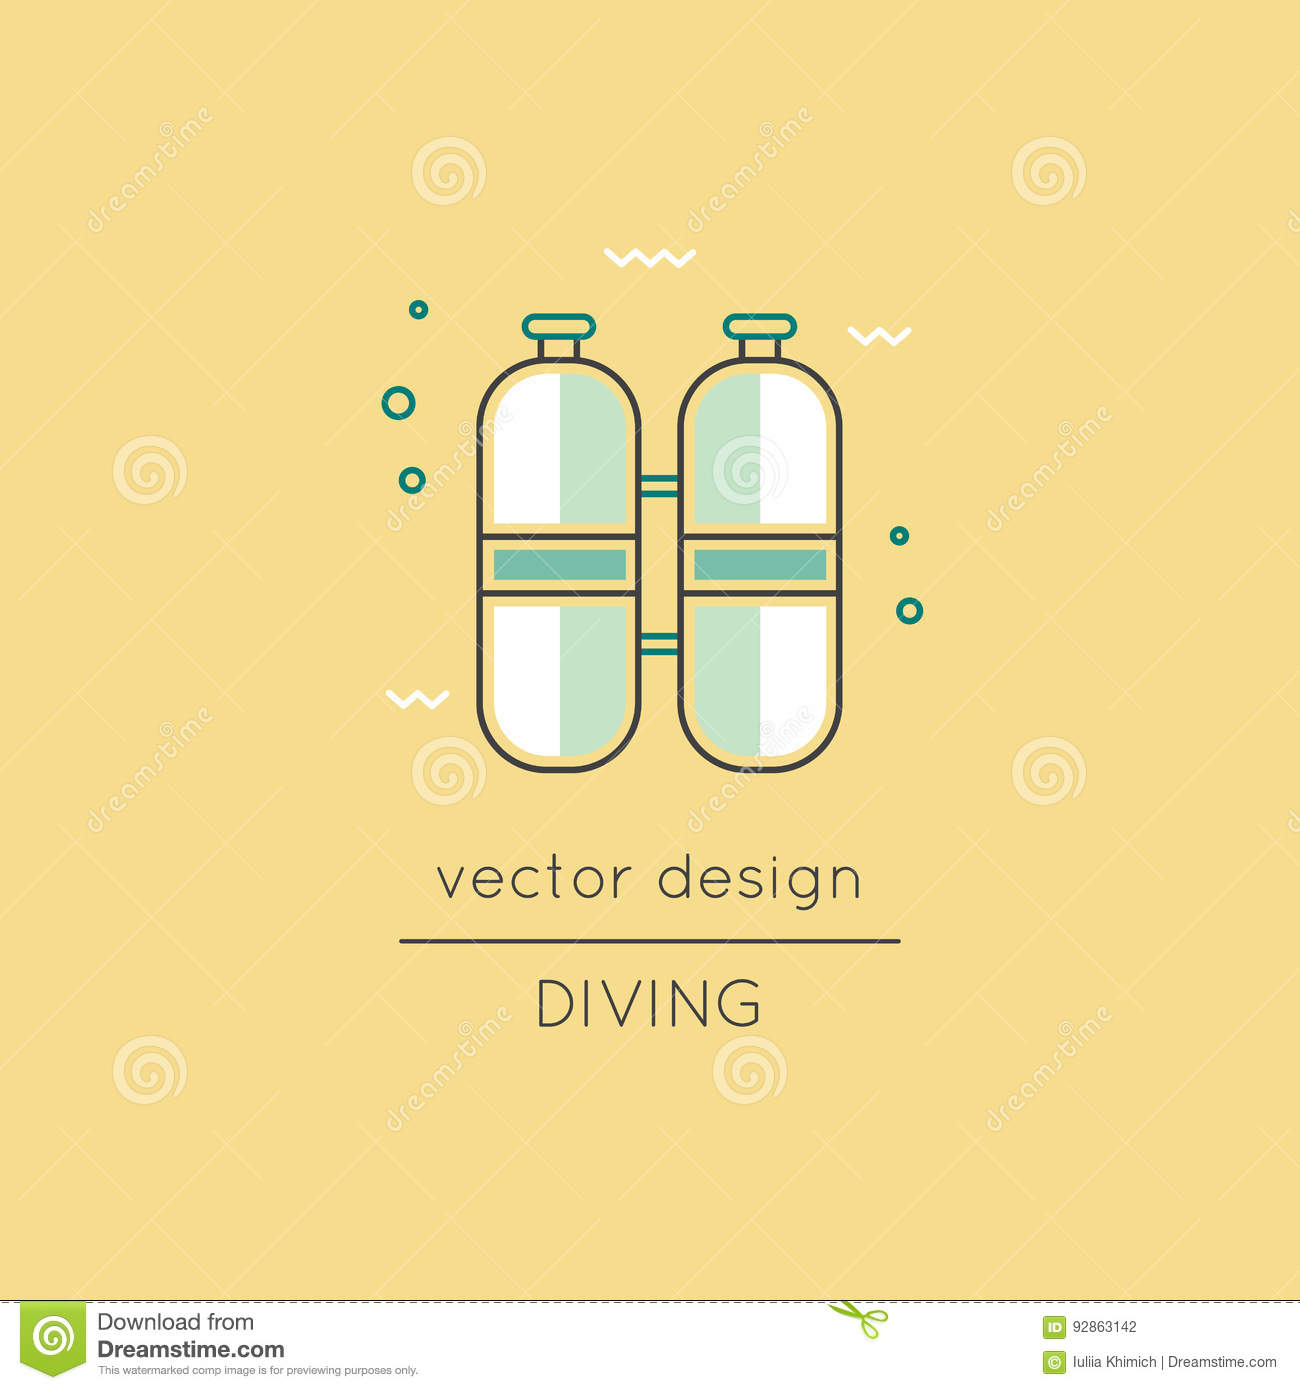 Diving Line Icon Stock Vector Illustration Of Icon Linear 92863142